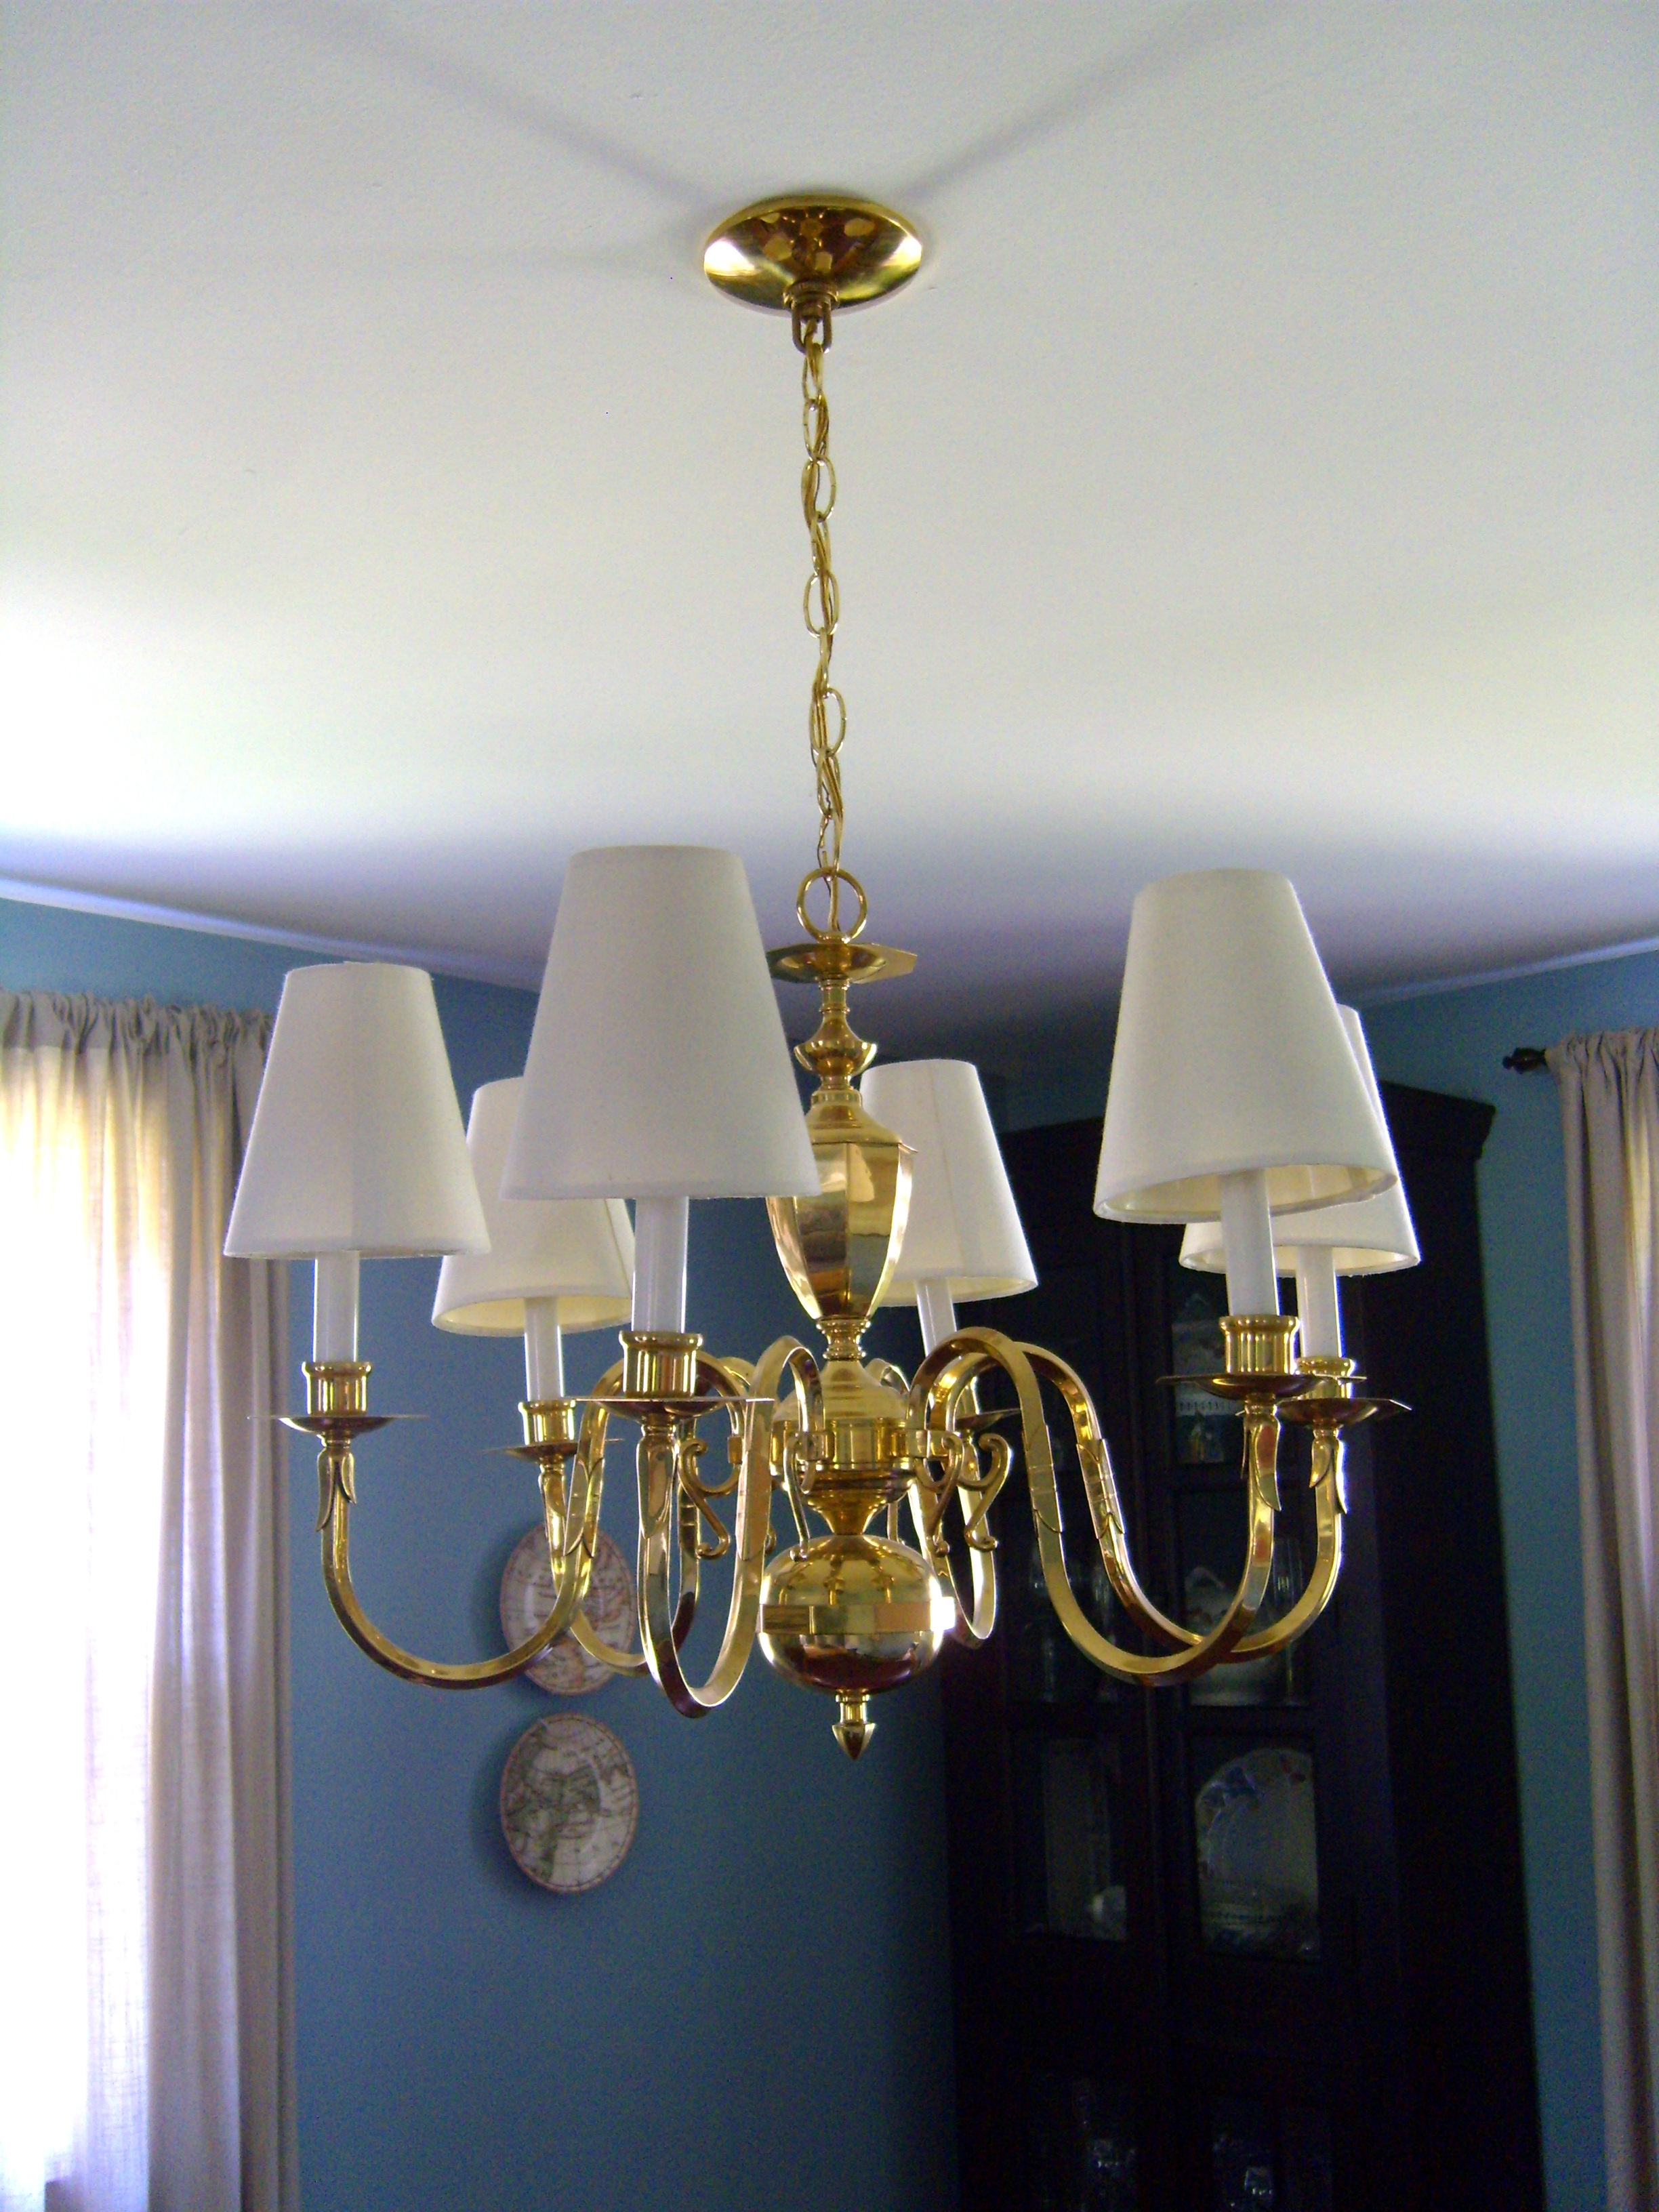 Drum Lamp Shades For Chandeliers With Regard To Most Up To Date Furniture : Small Drum Lamp Shades Chandelier Saving Space Mini (View 4 of 15)